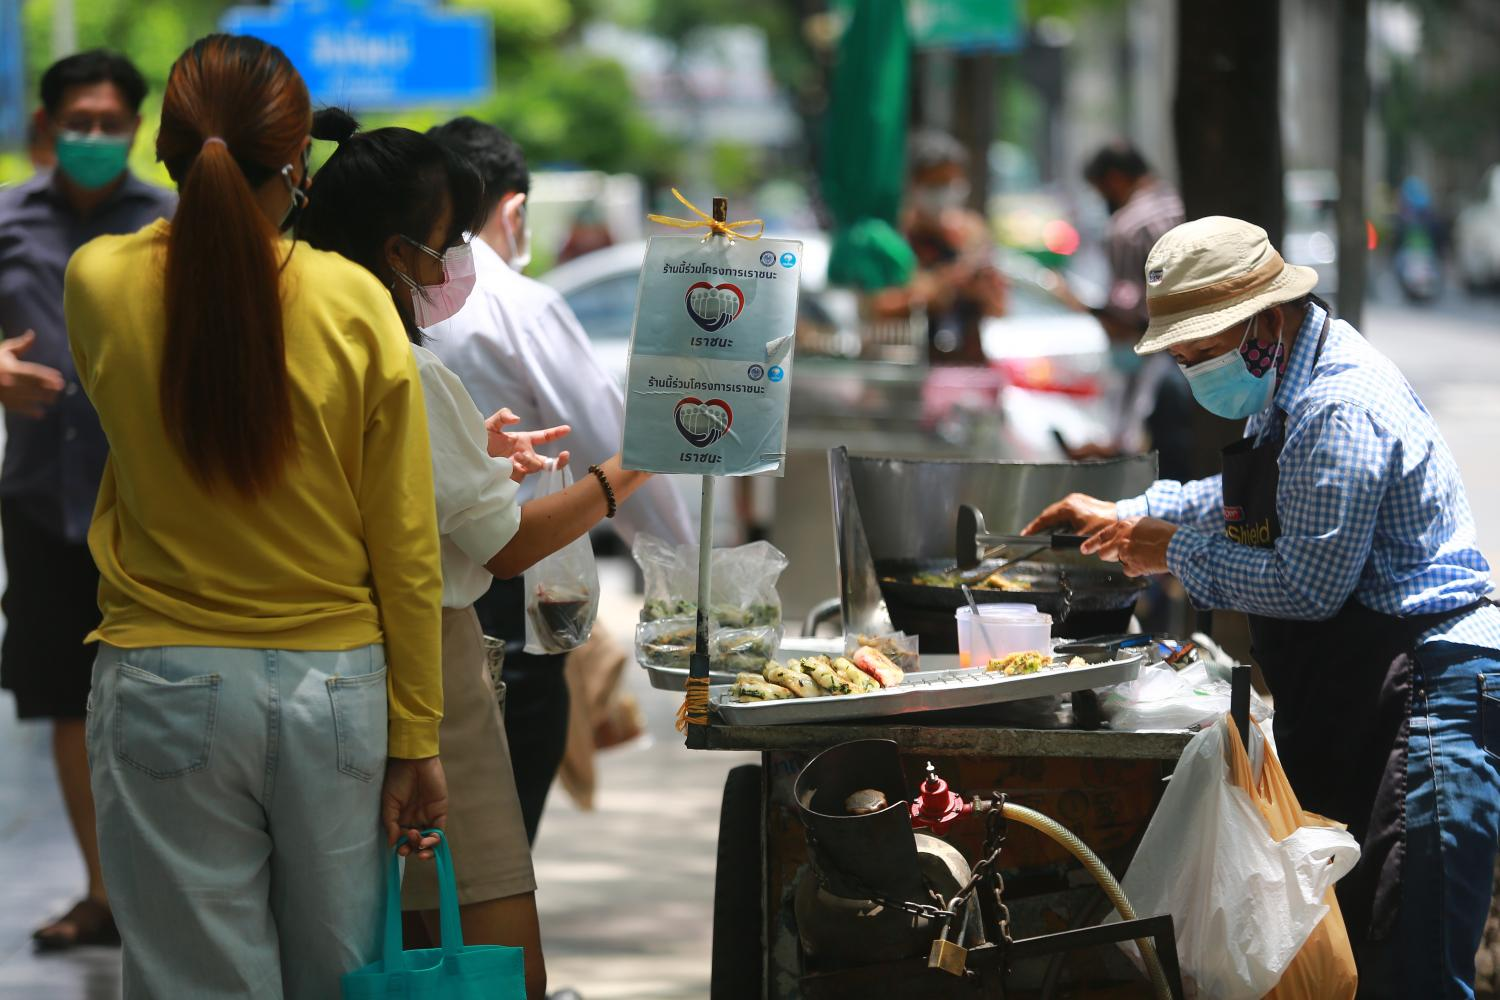 A sign for the Rao Chana (We Win) scheme is seen at a food stall in the Silom area of Bangkok. (Photo by Somchai Poomlard)